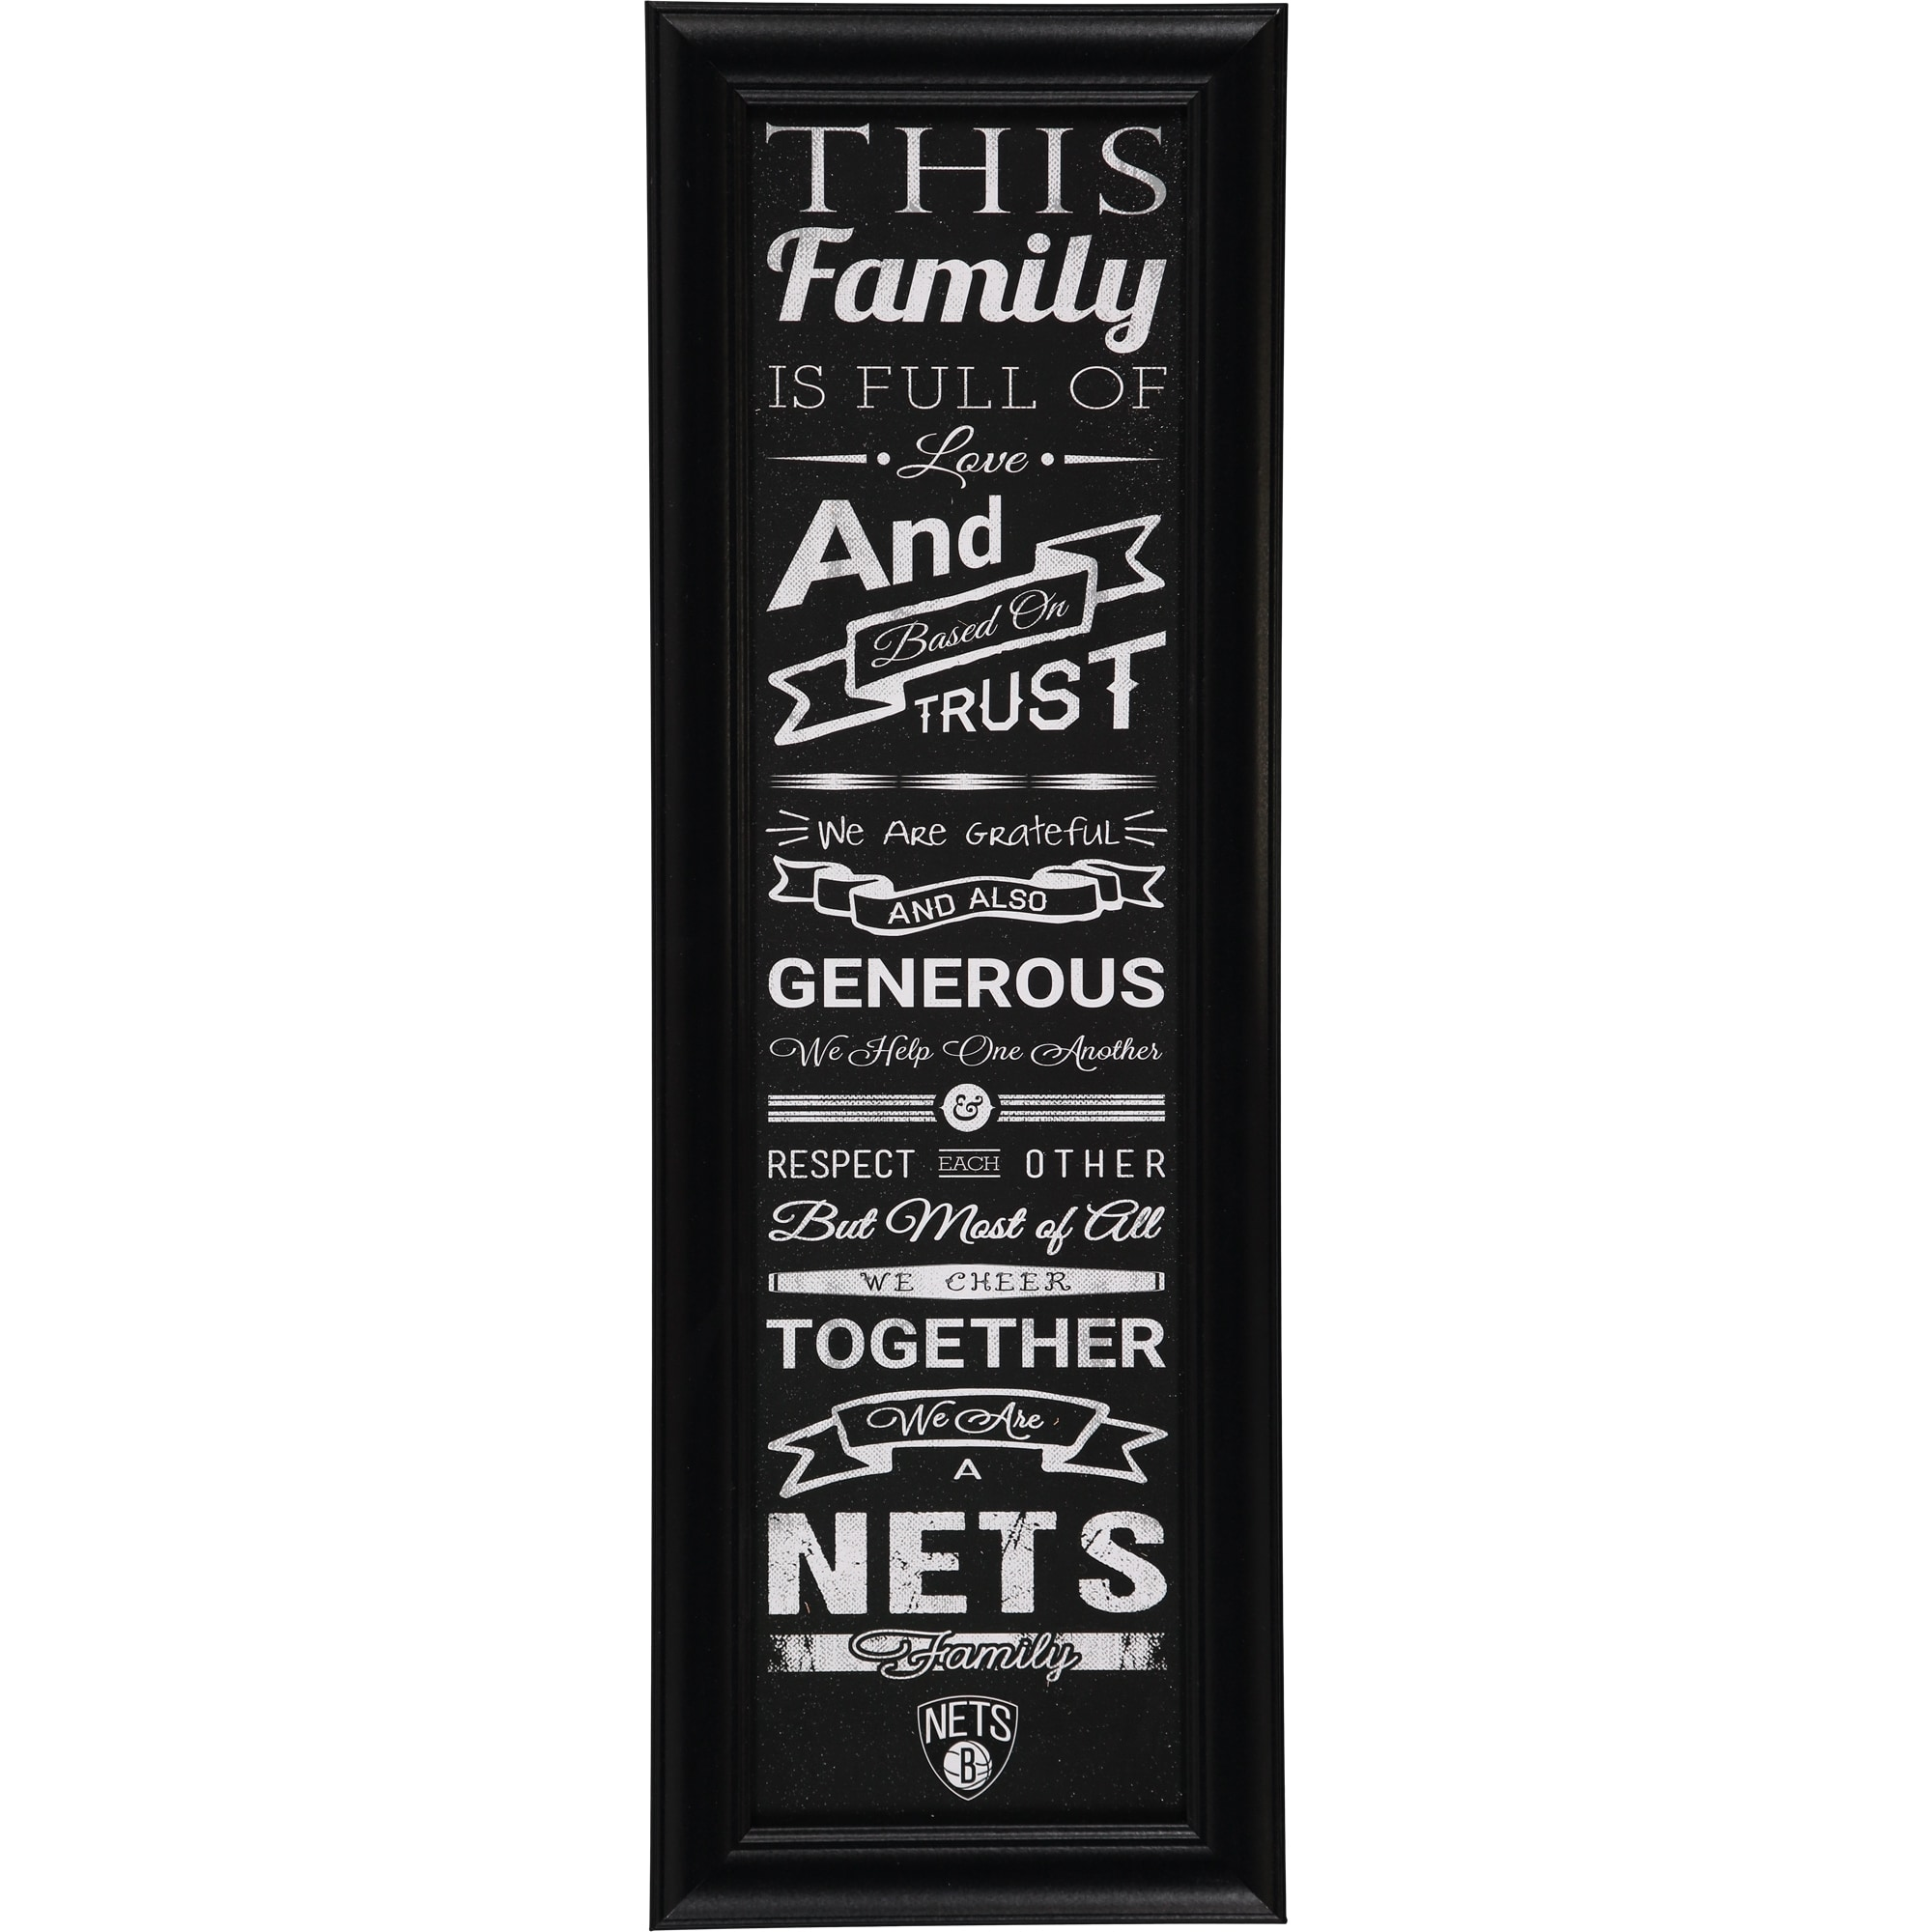 Brooklyn Nets Crackle Family Cheer Framed Art